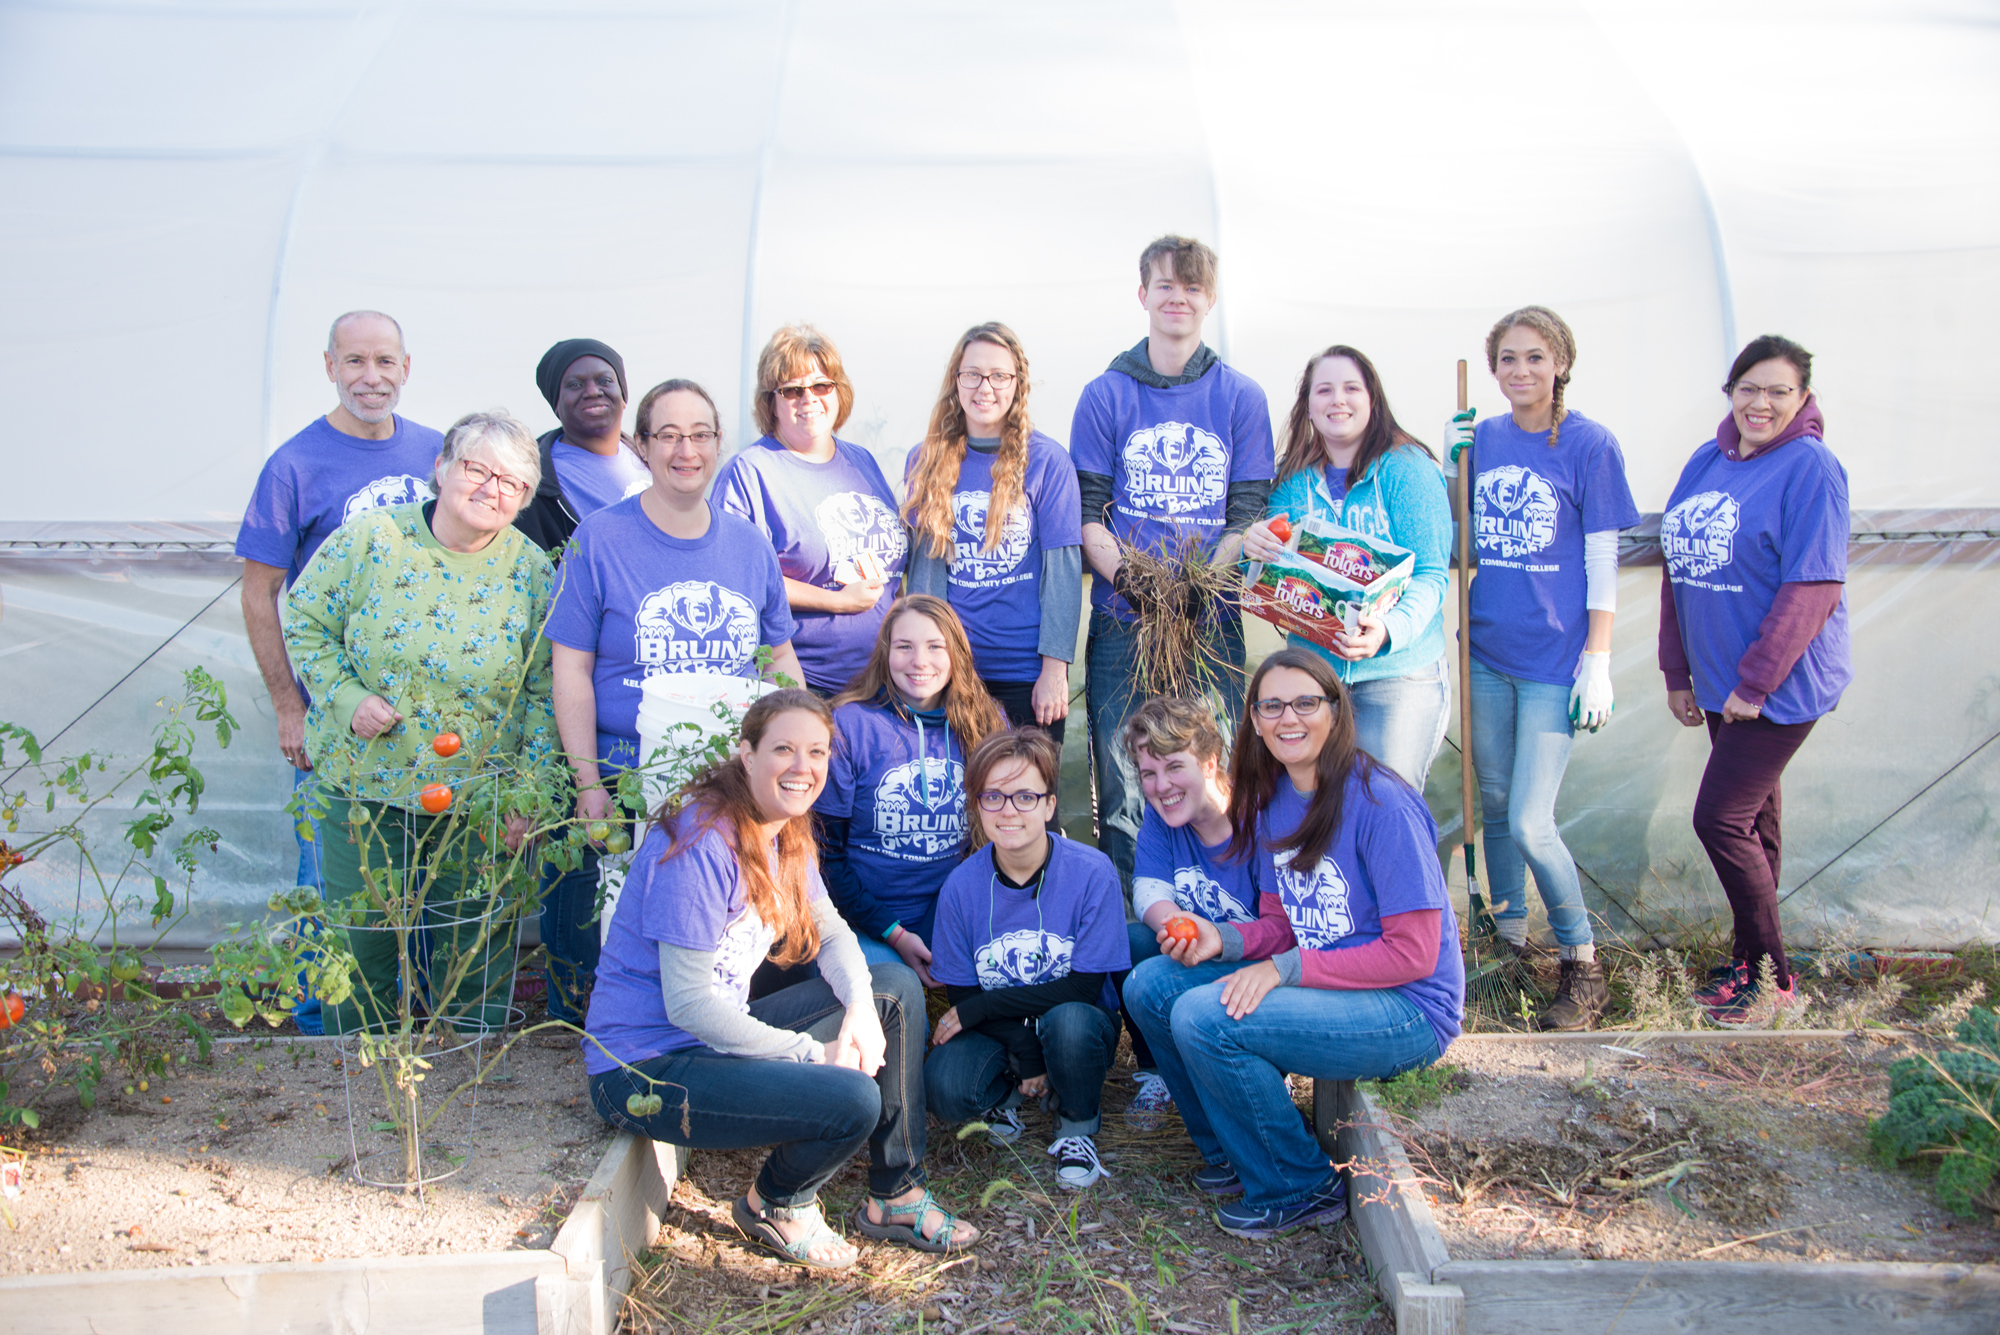 Bruins Give Back participants pose for a group photo in KCC's community garden.